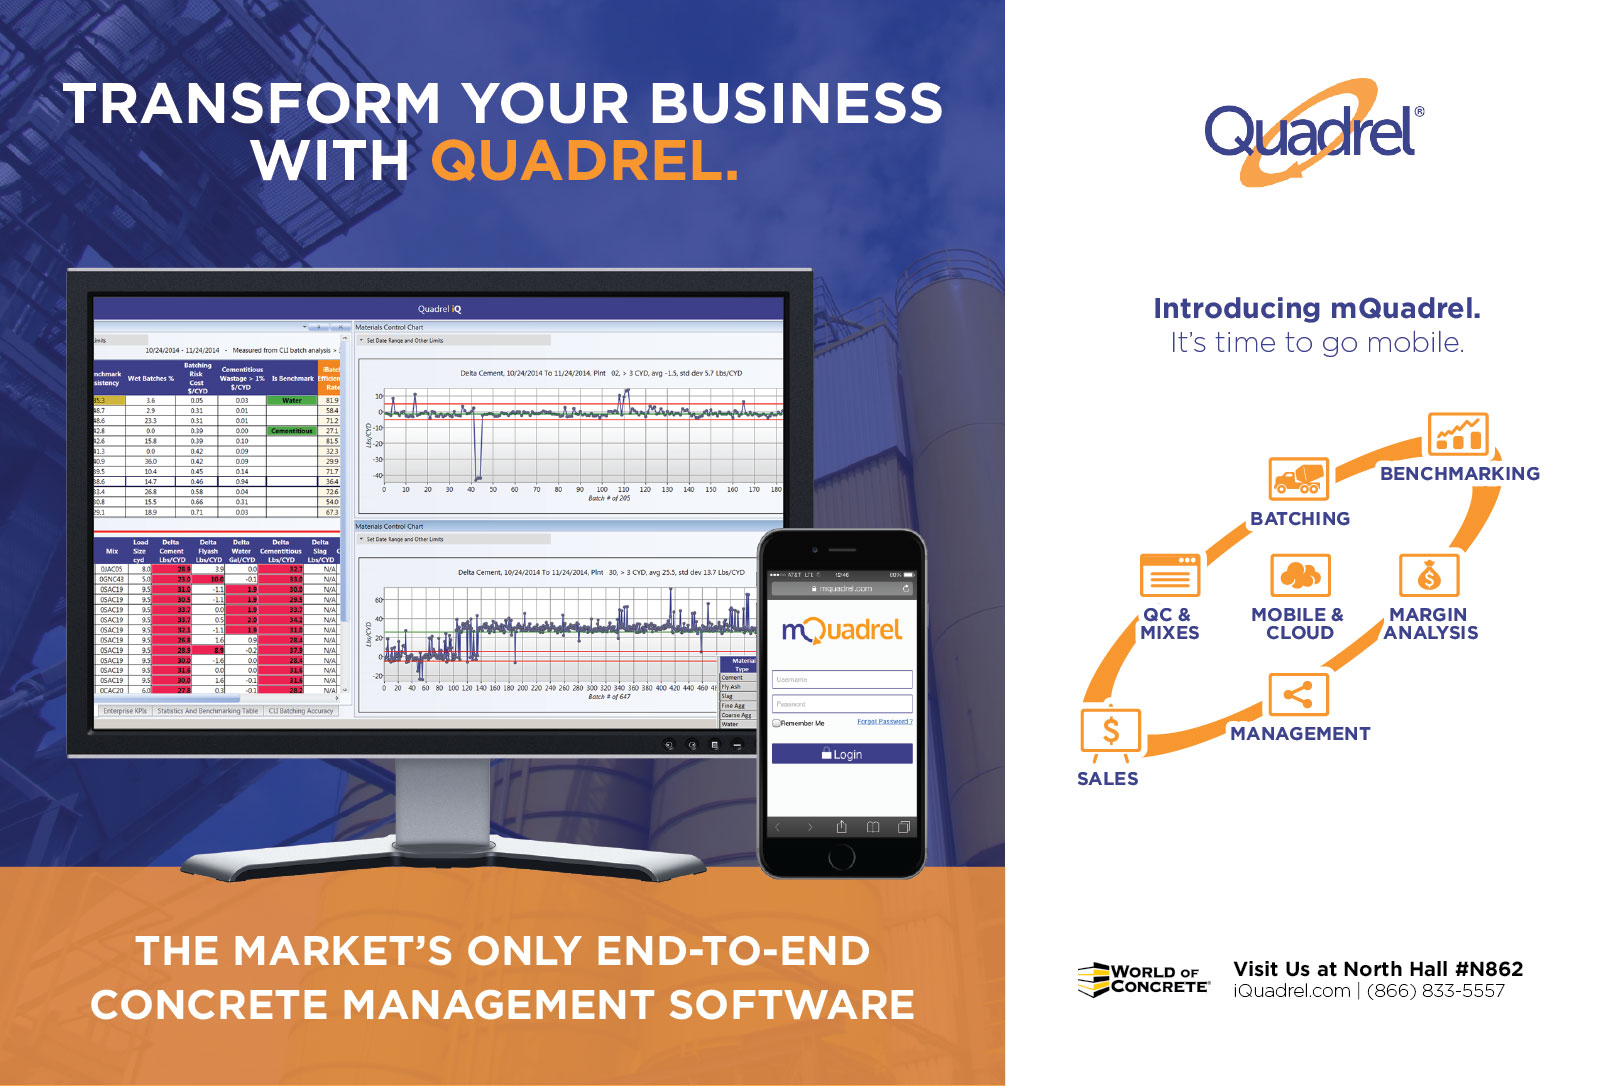 An alternate print advertisement design for Quadrel Software.